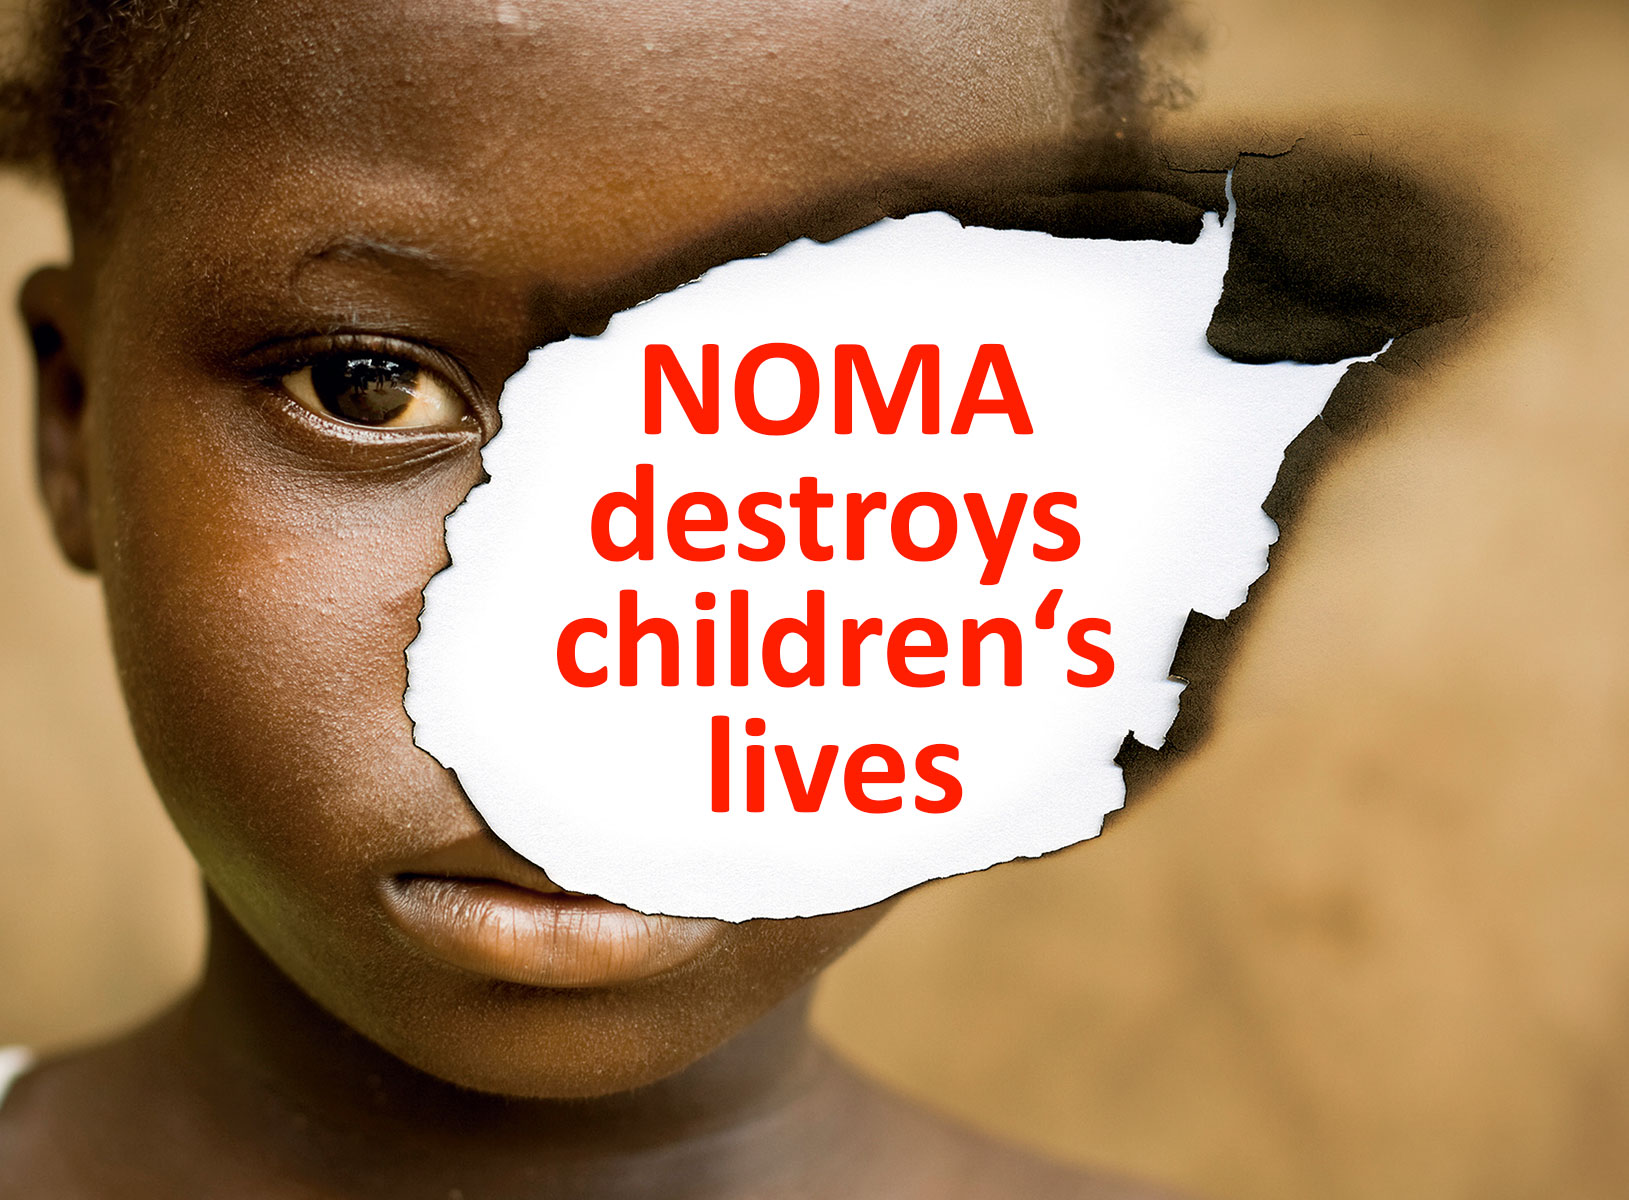 NOMA destroys children's lives